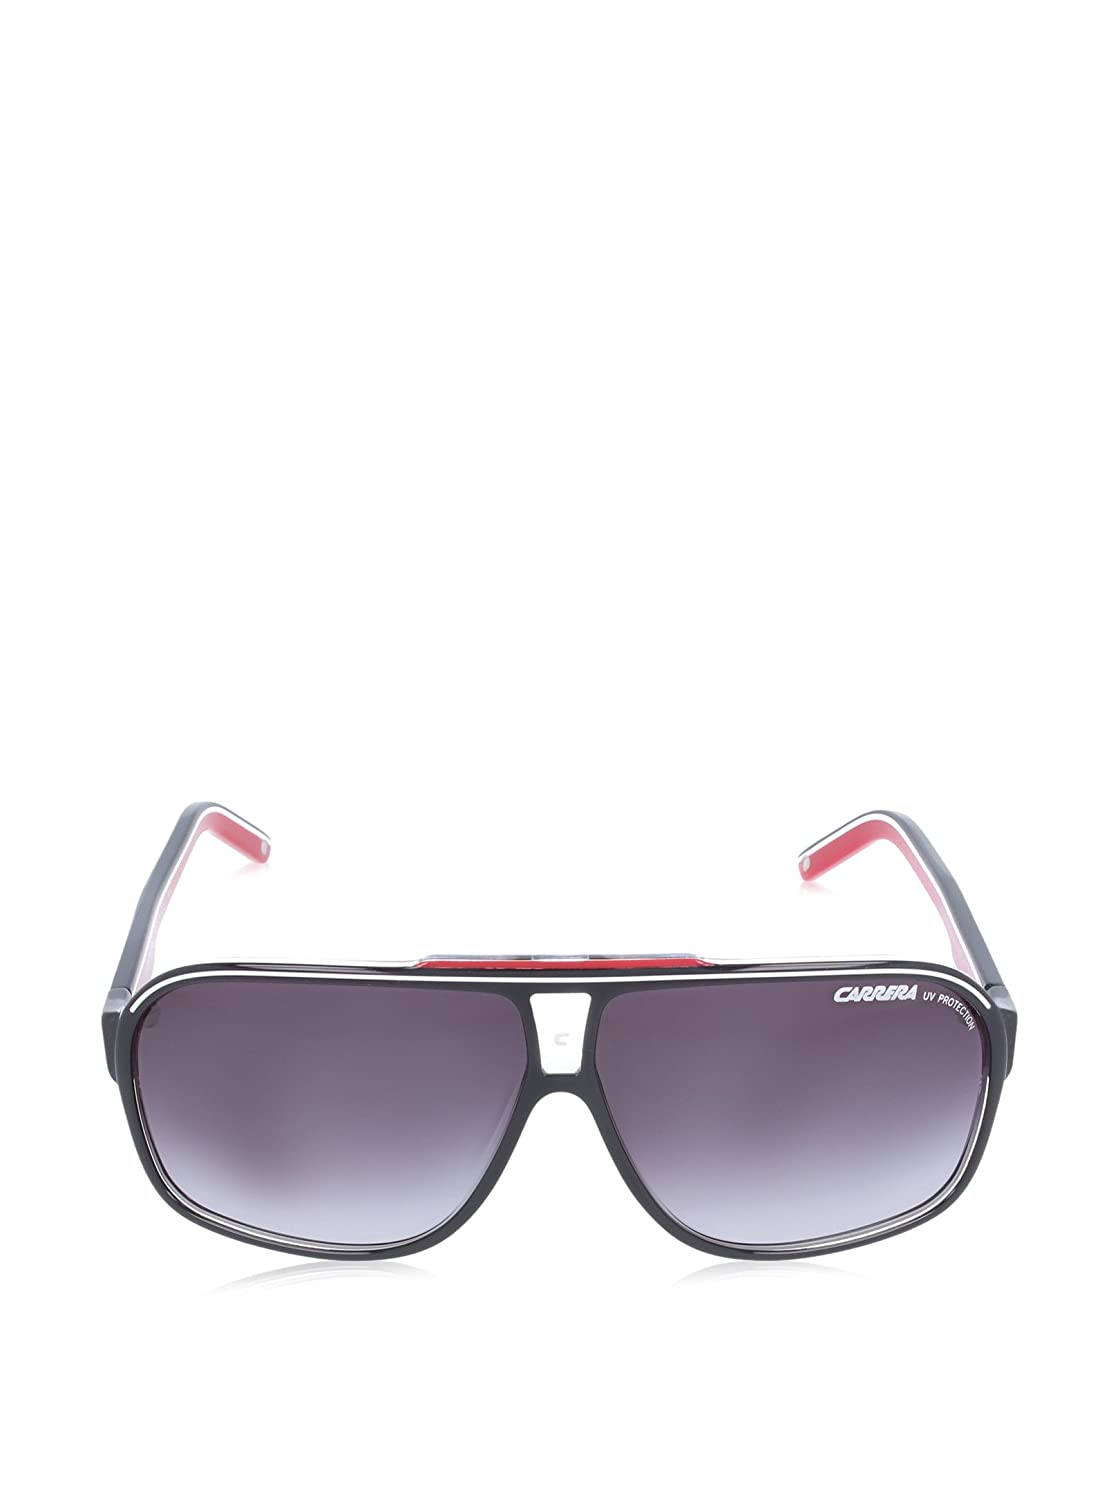 Carrera mixte adulte GRAND PRIX 2 9O T4O Montures de lunettes, Noir (Bkcr Bkwhred/Dark Grey Sf), 64